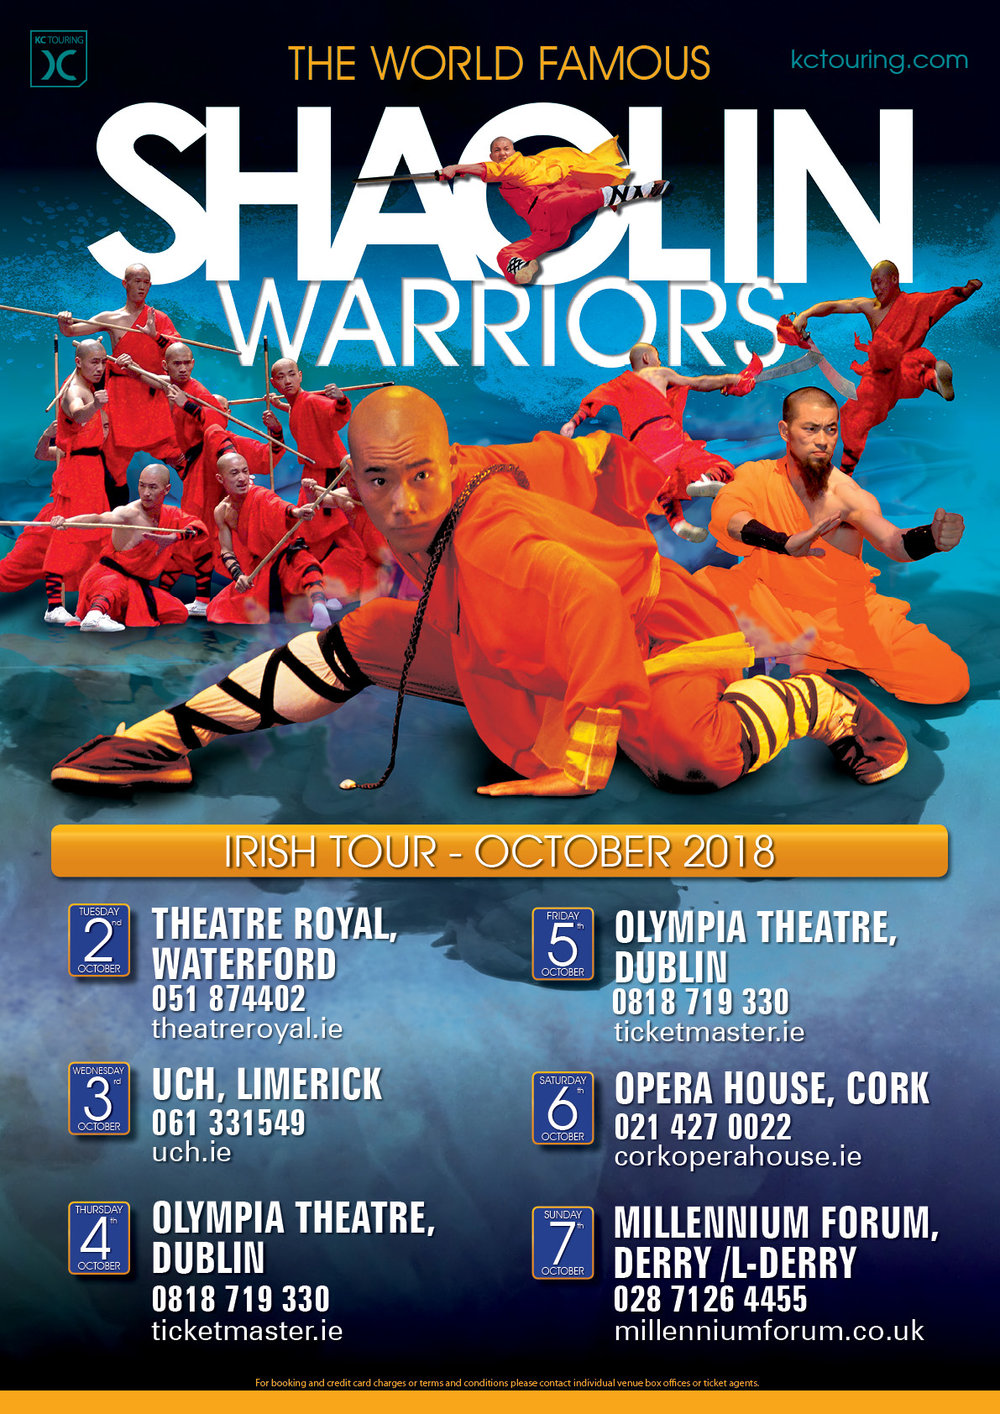 Shaolin tour Ireland 2018 - All Dates A2.jpg